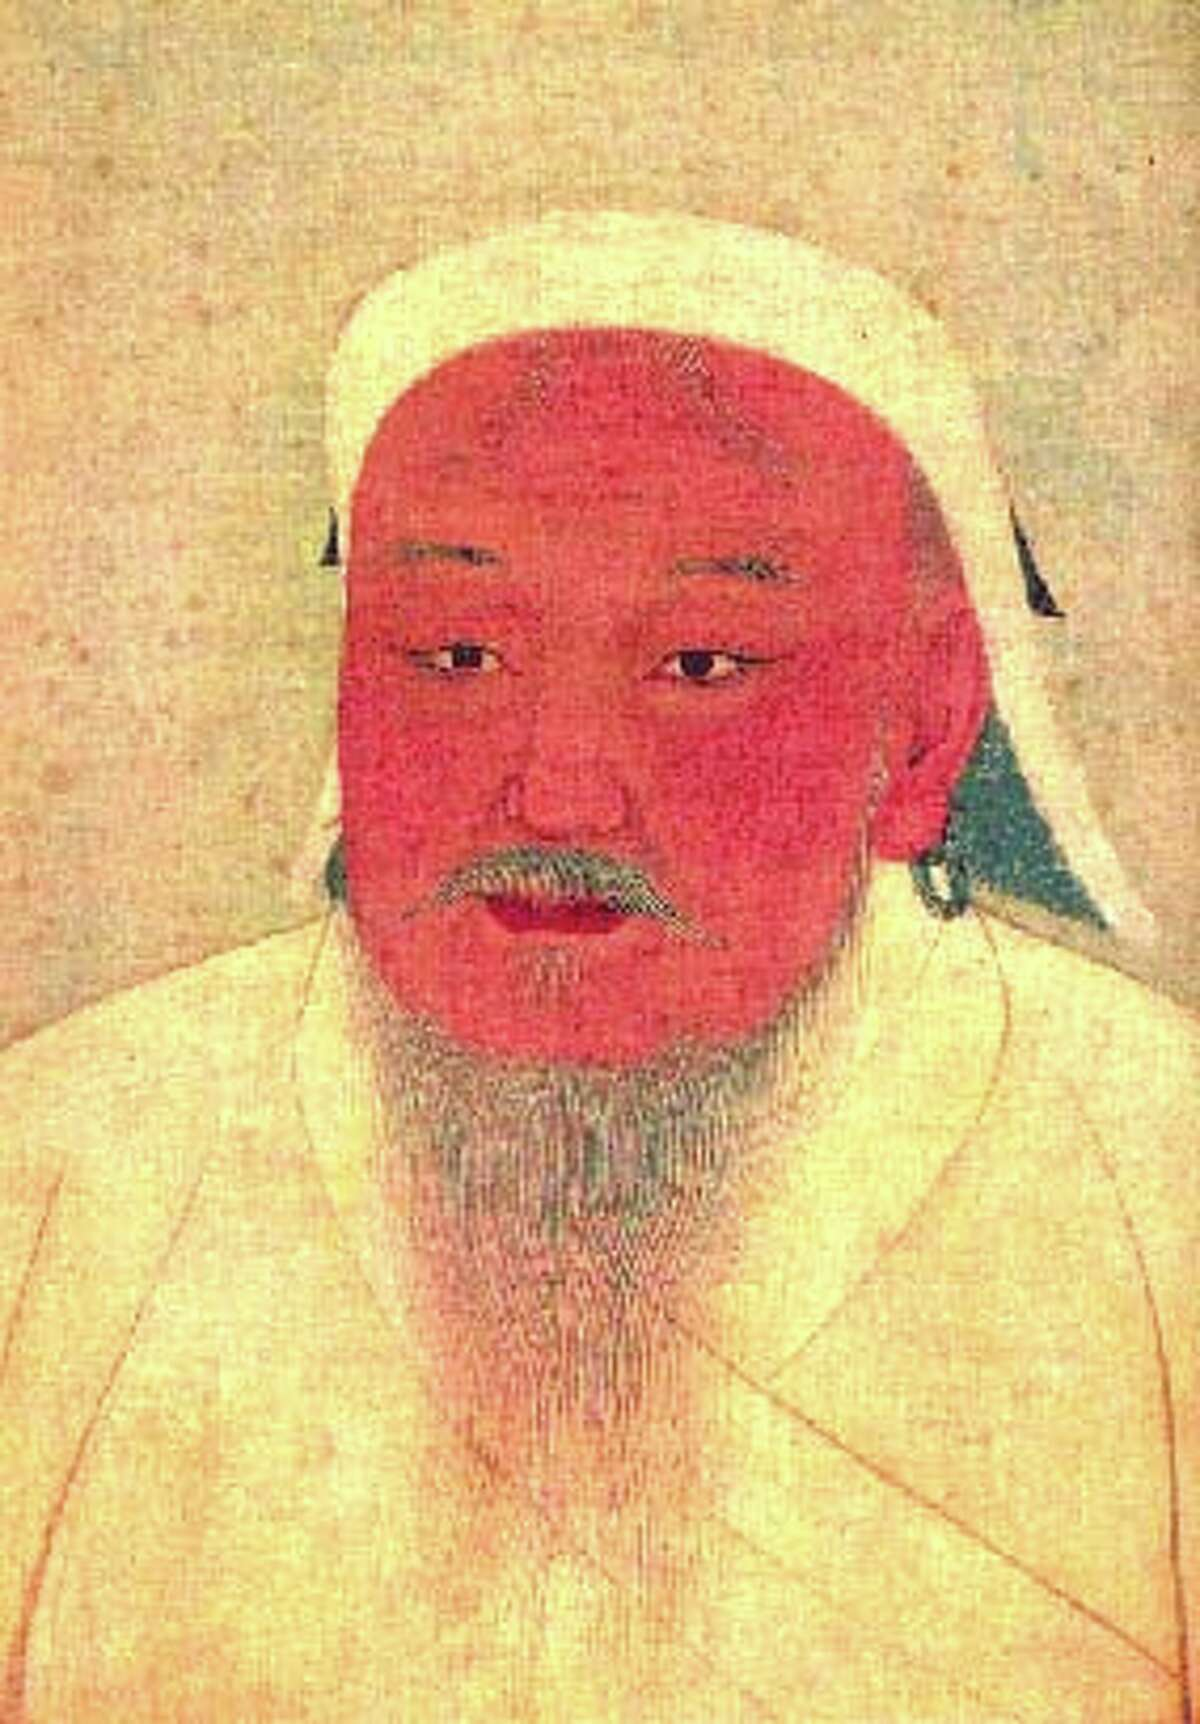 Khan Man: Why's your face so red, Genghis? Sixteen million descendants isn't something to be embarrassed by. Well, unless they're the product of murder and rape. Portrait of Temujin, Yuan Dynasty, National Palace Museum of Taipei